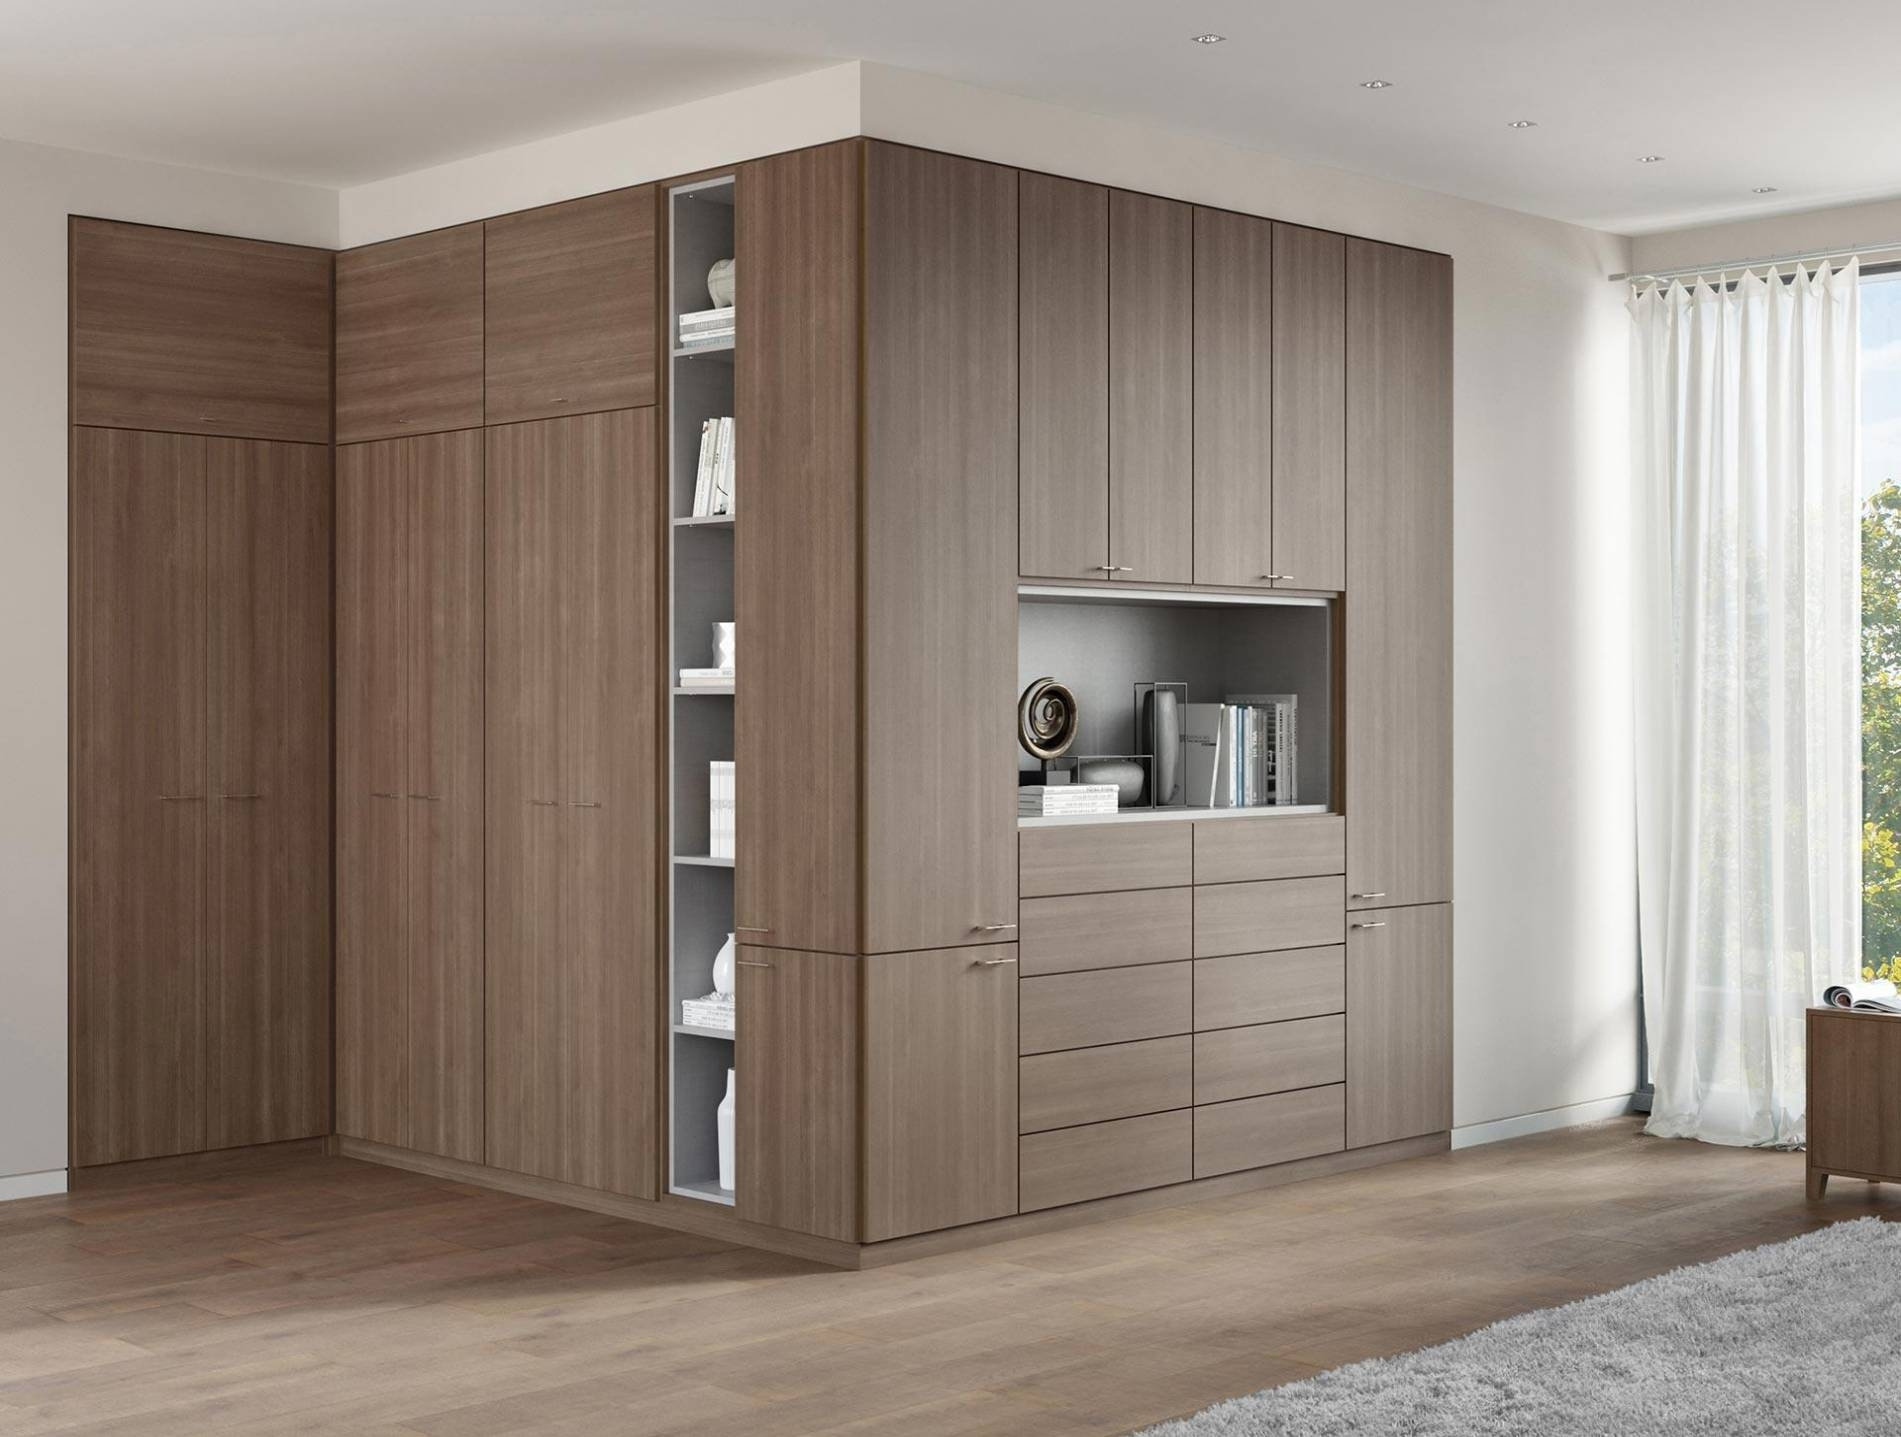 Modern Wardrobe Designs To Make Your Bedroom Stunning